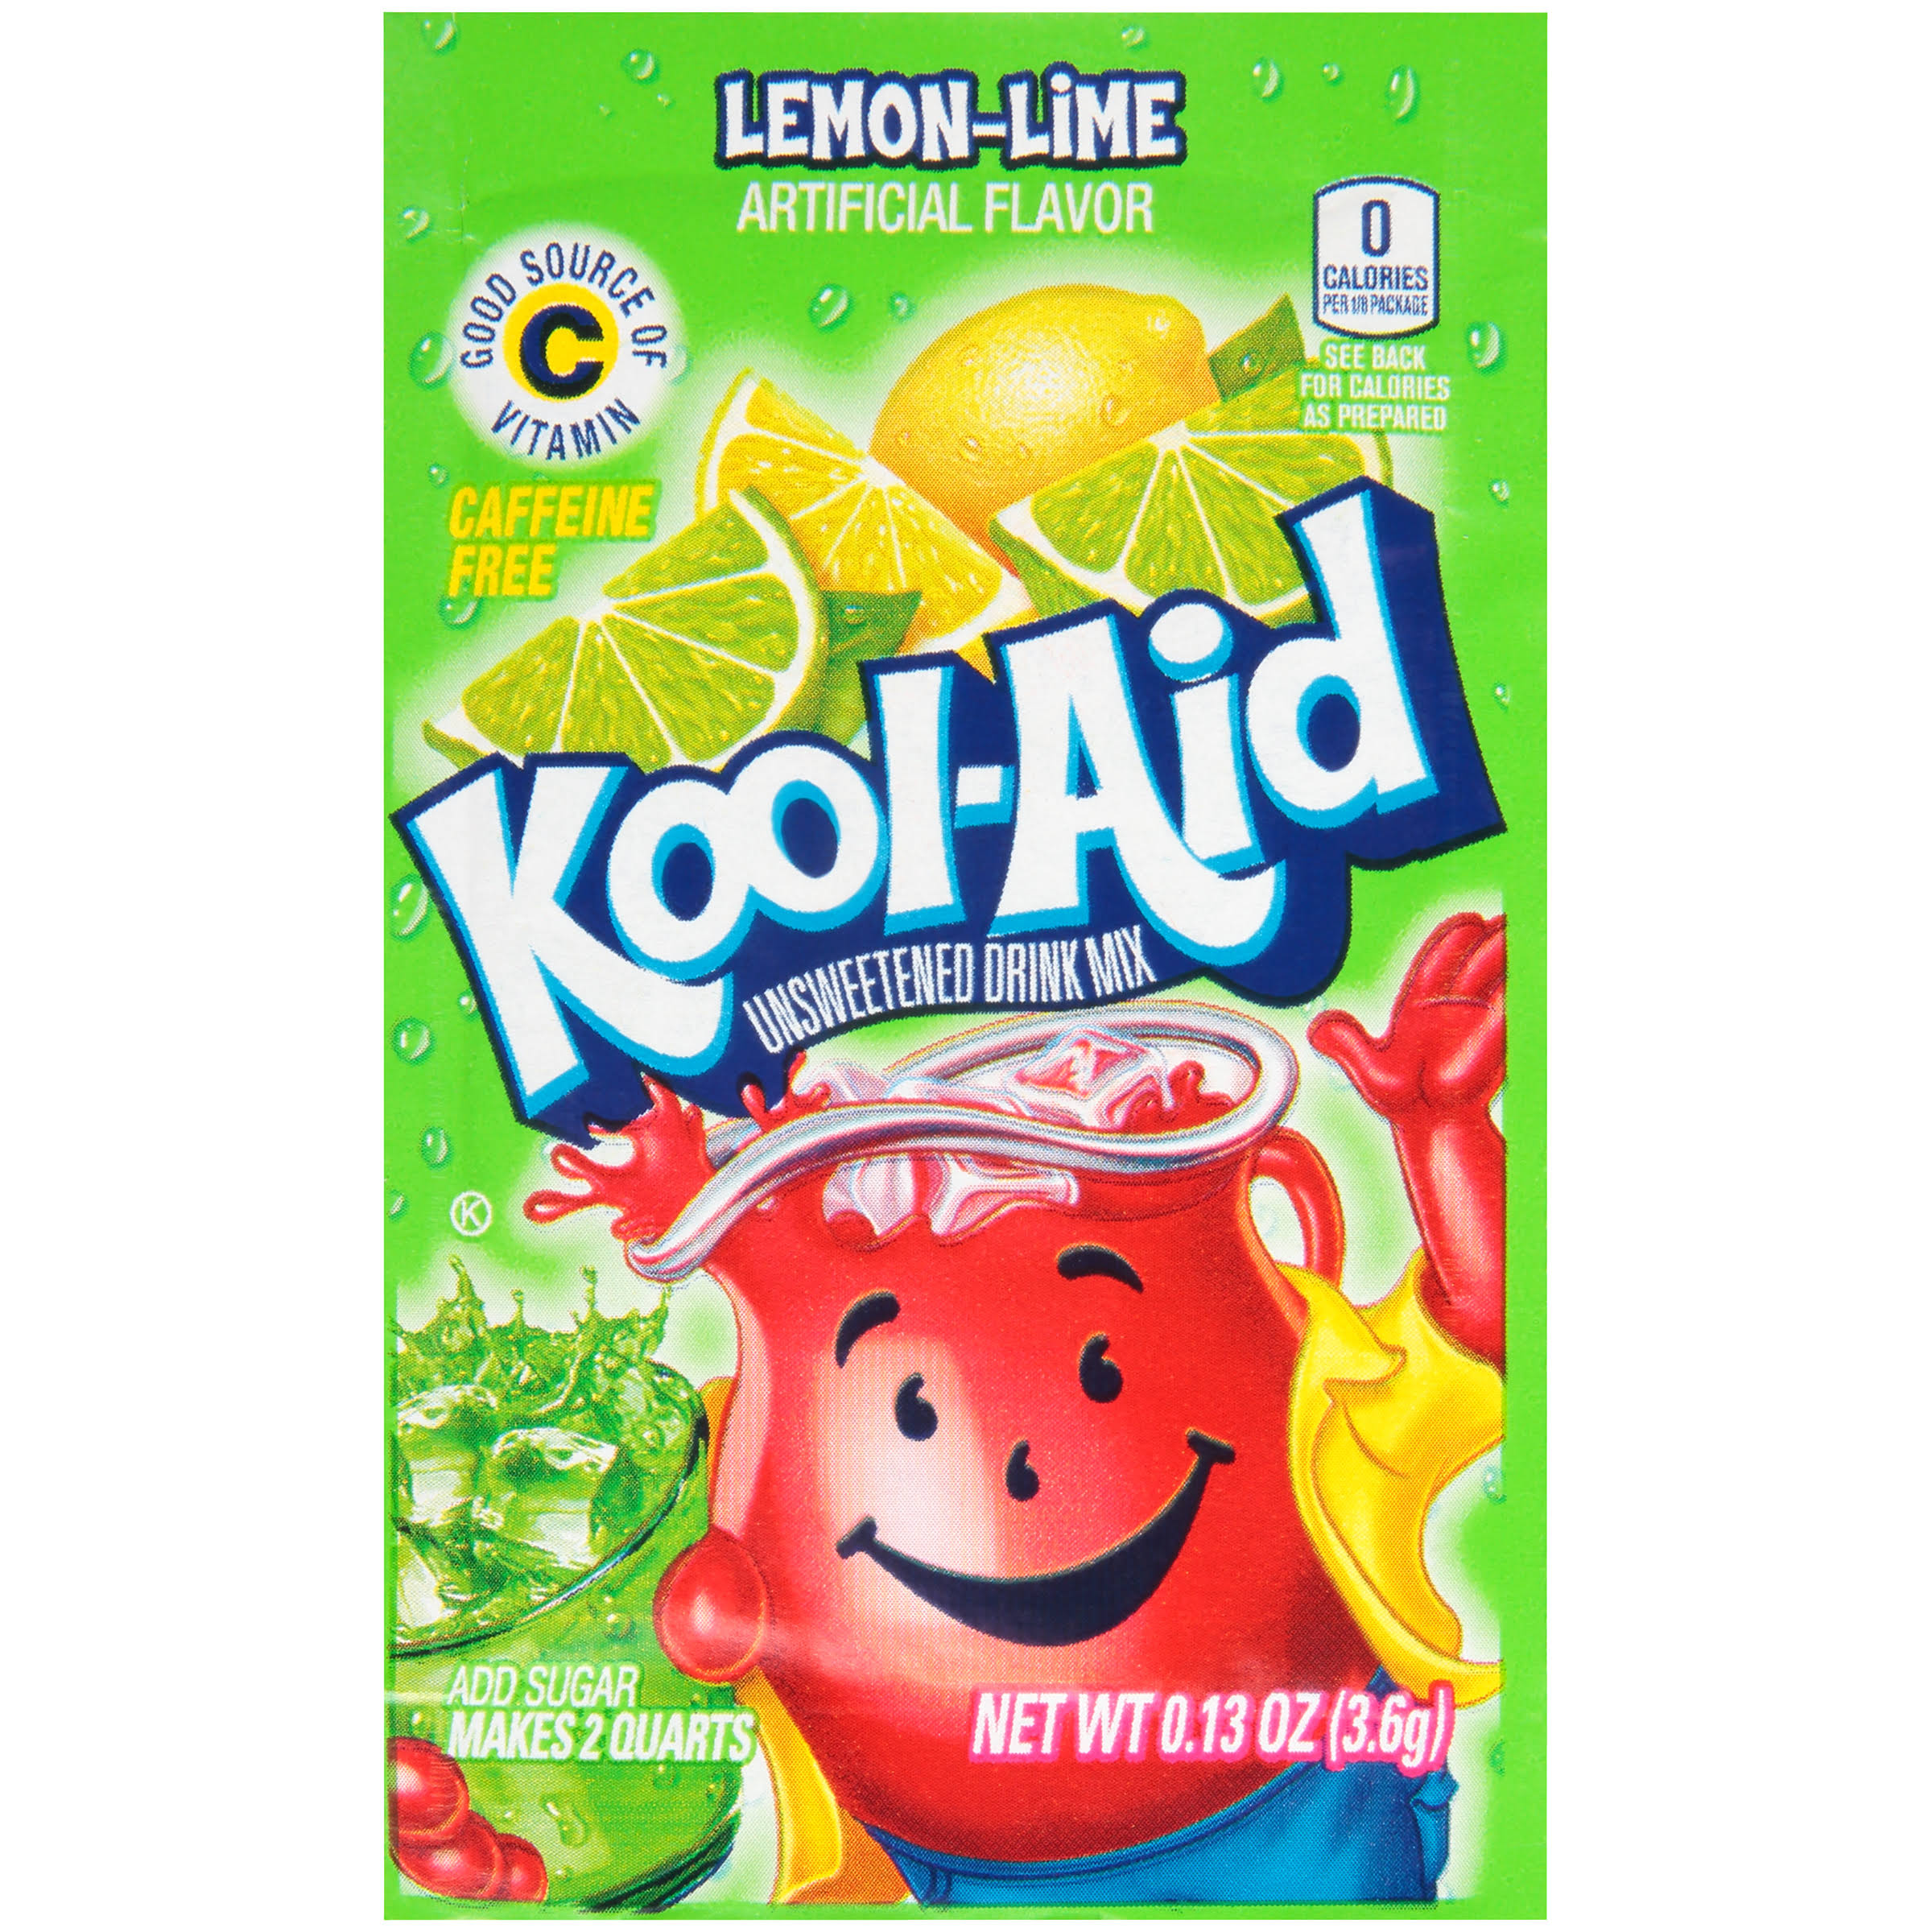 Kool-Aid Unsweetened Drink Mix - Lemon-Lime, 3.6g